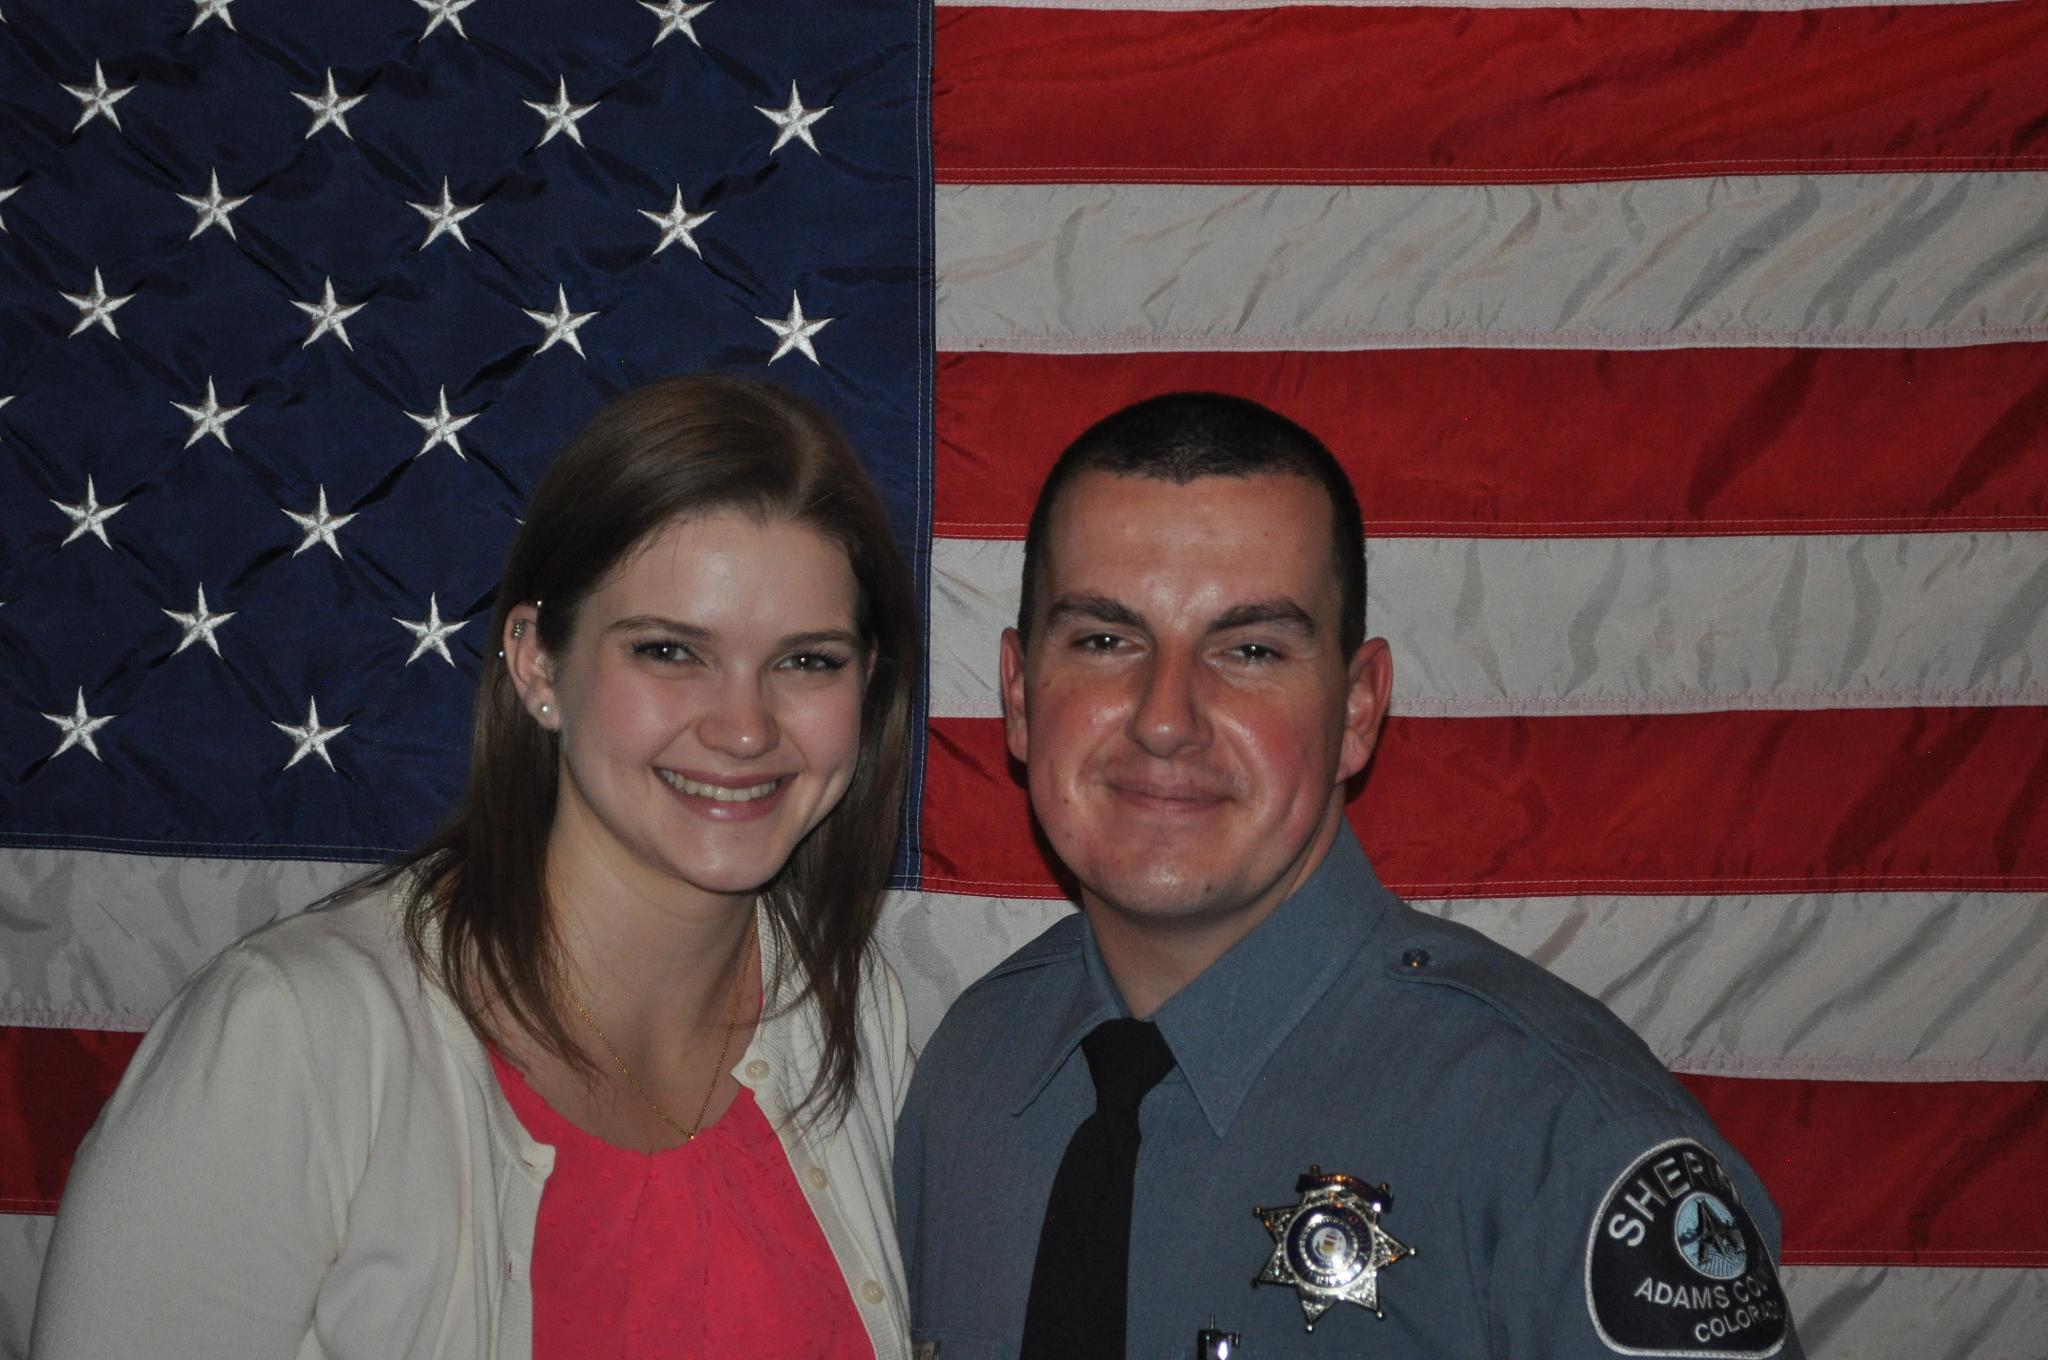 Sherriff Graduation by tammy.palmer